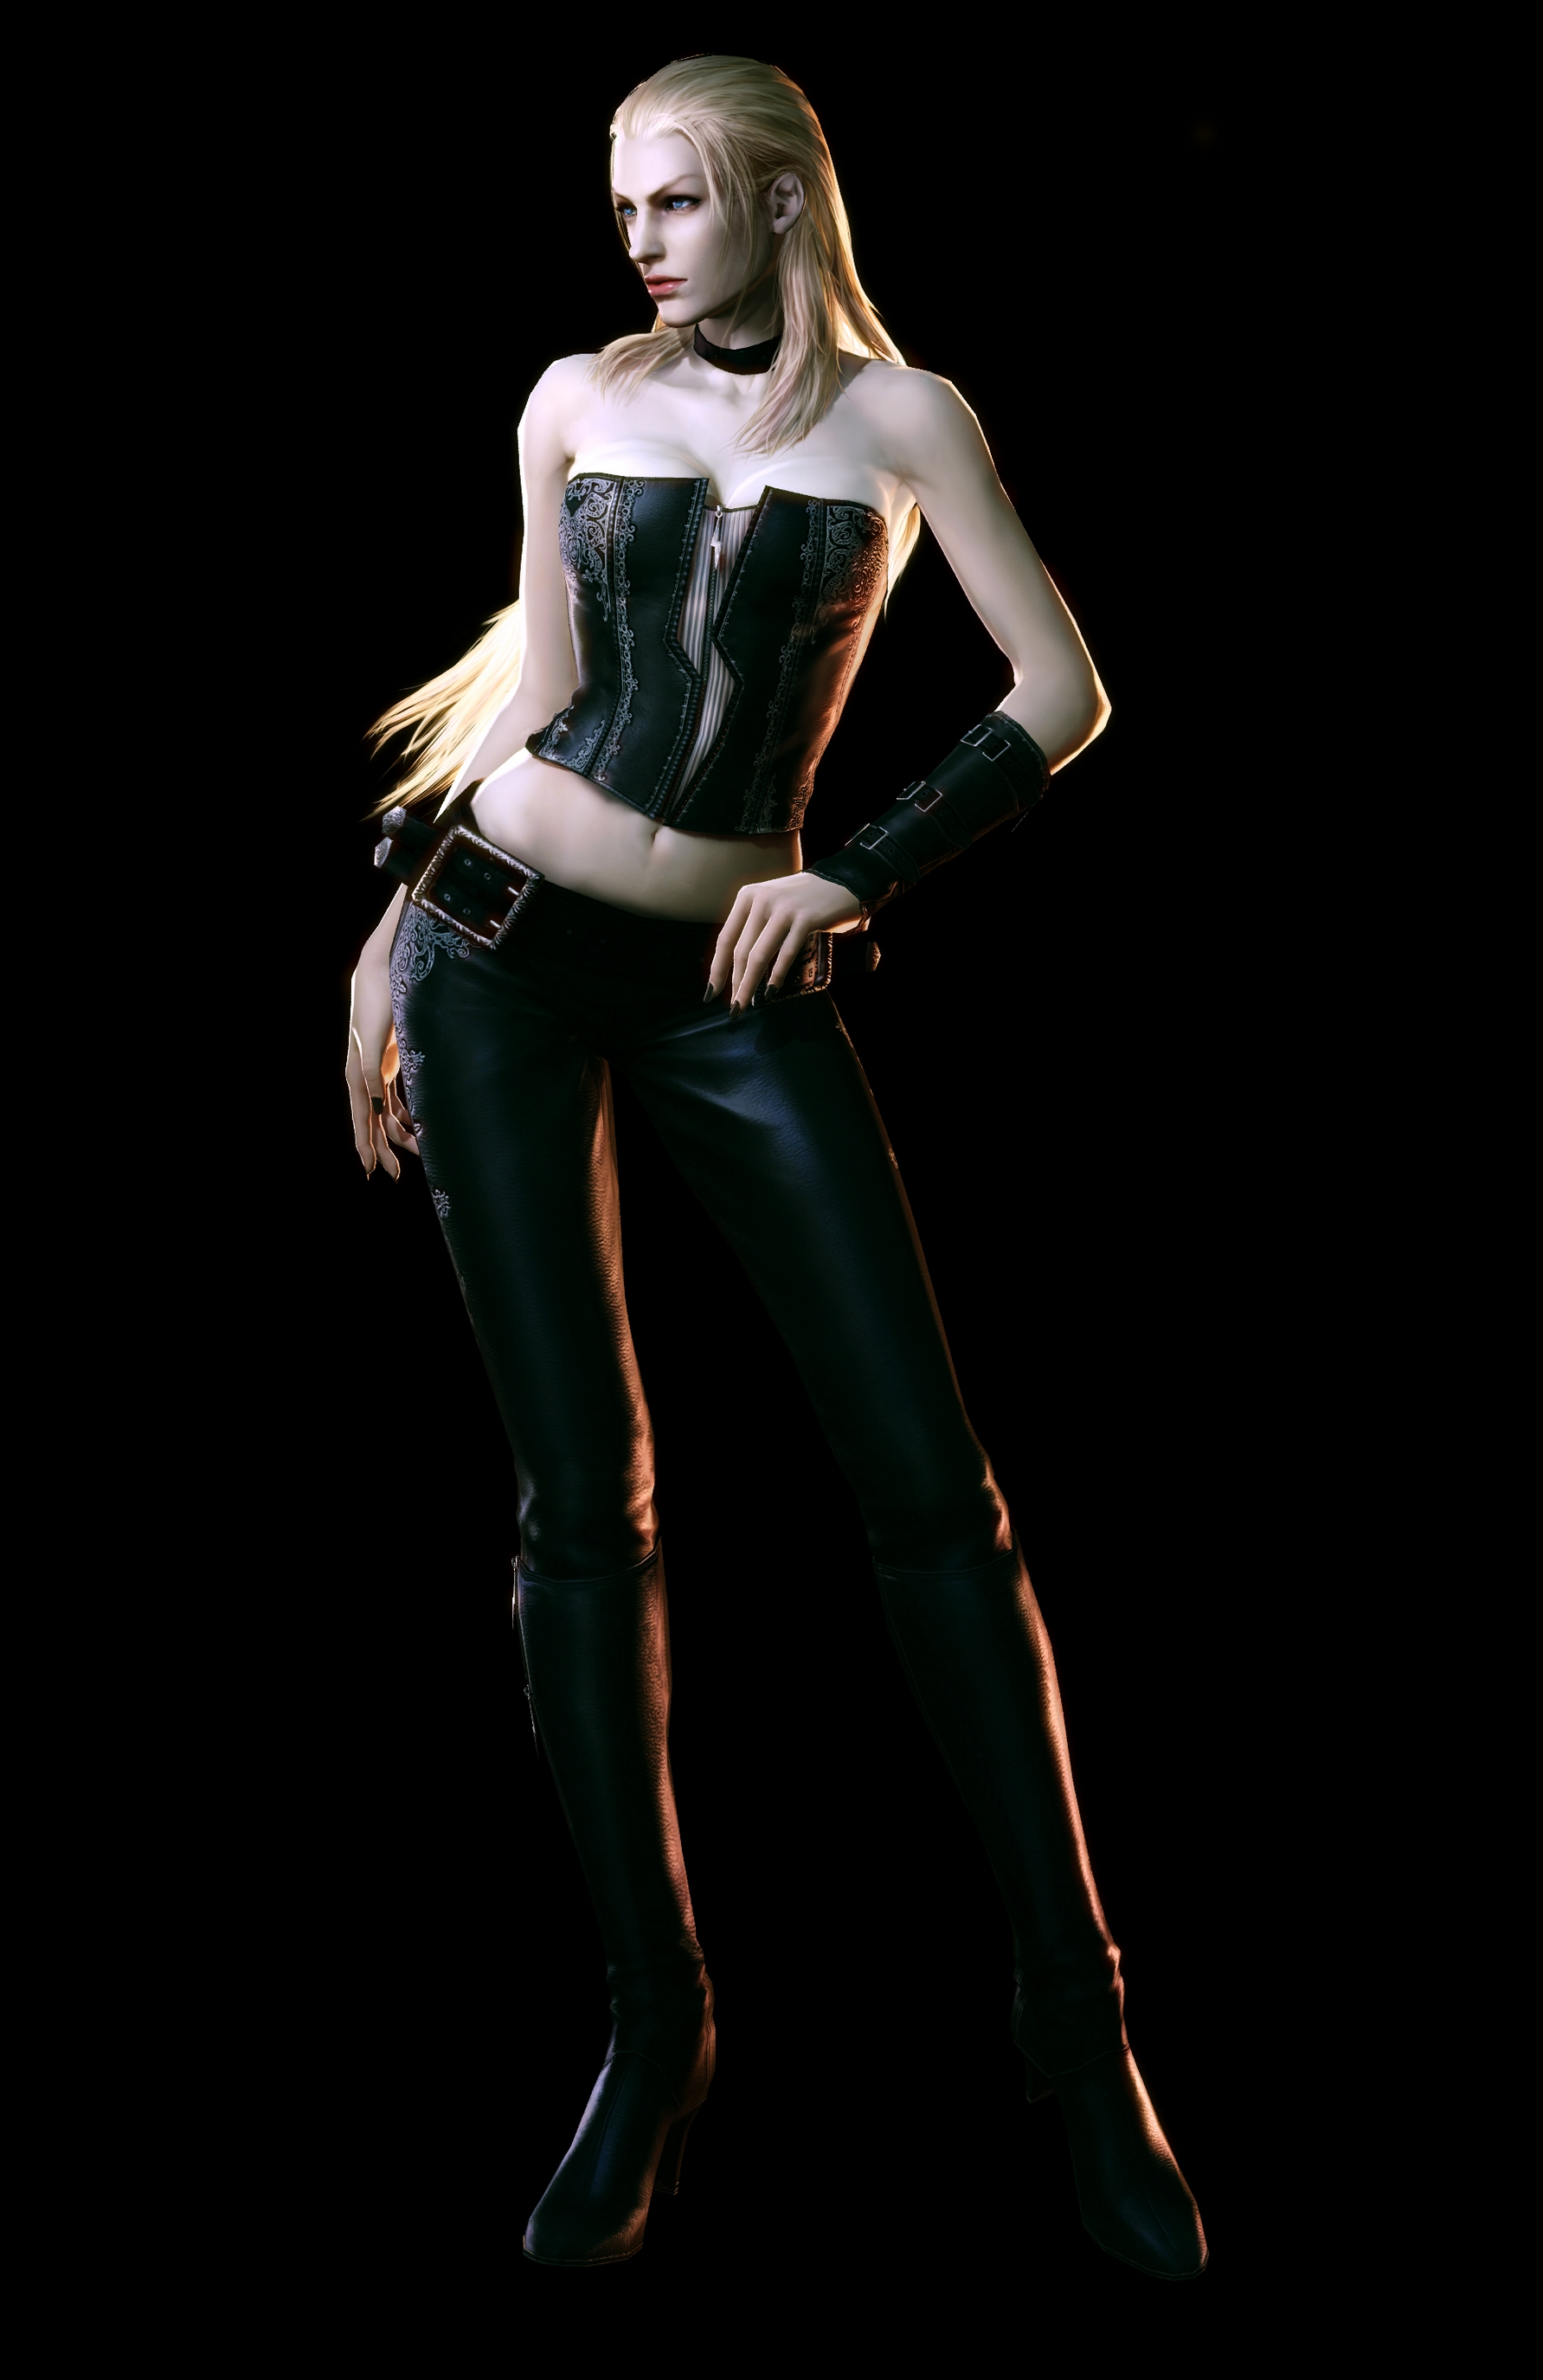 Trish Devil May Cry 4